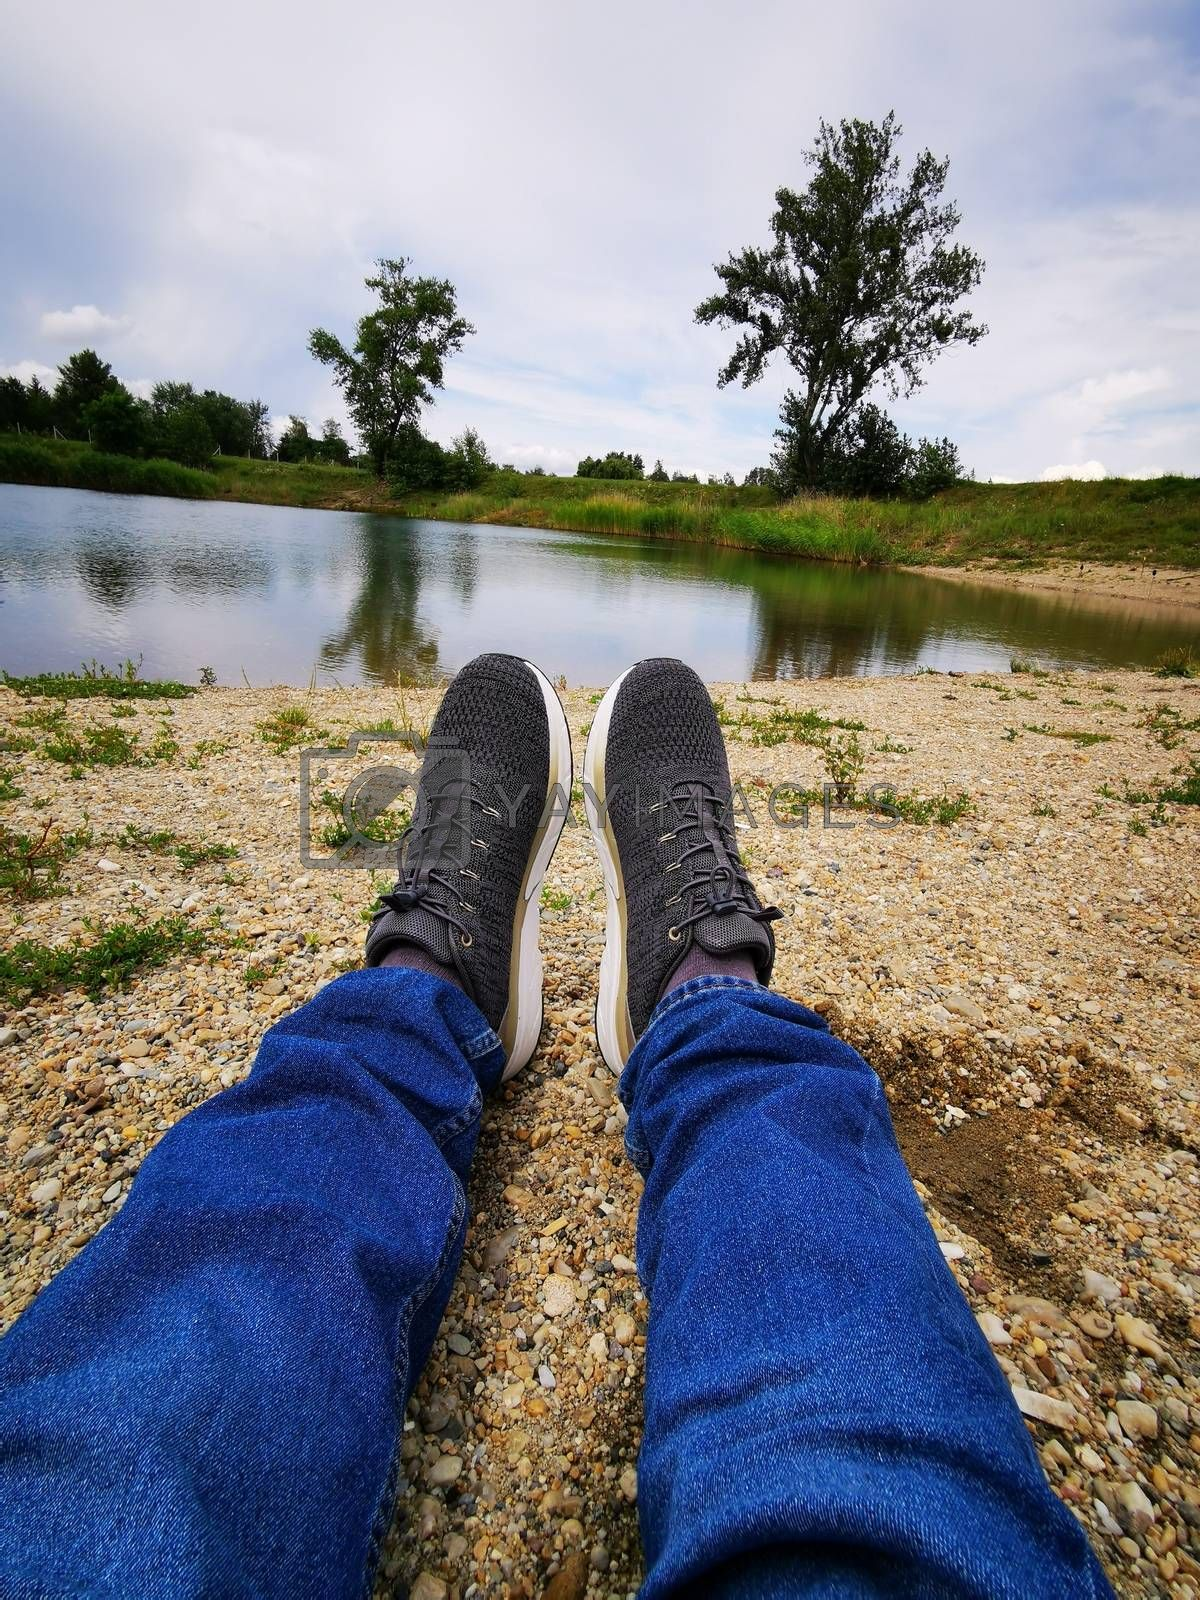 Royalty free image of The person who lies at the lake of Mály  by balage941